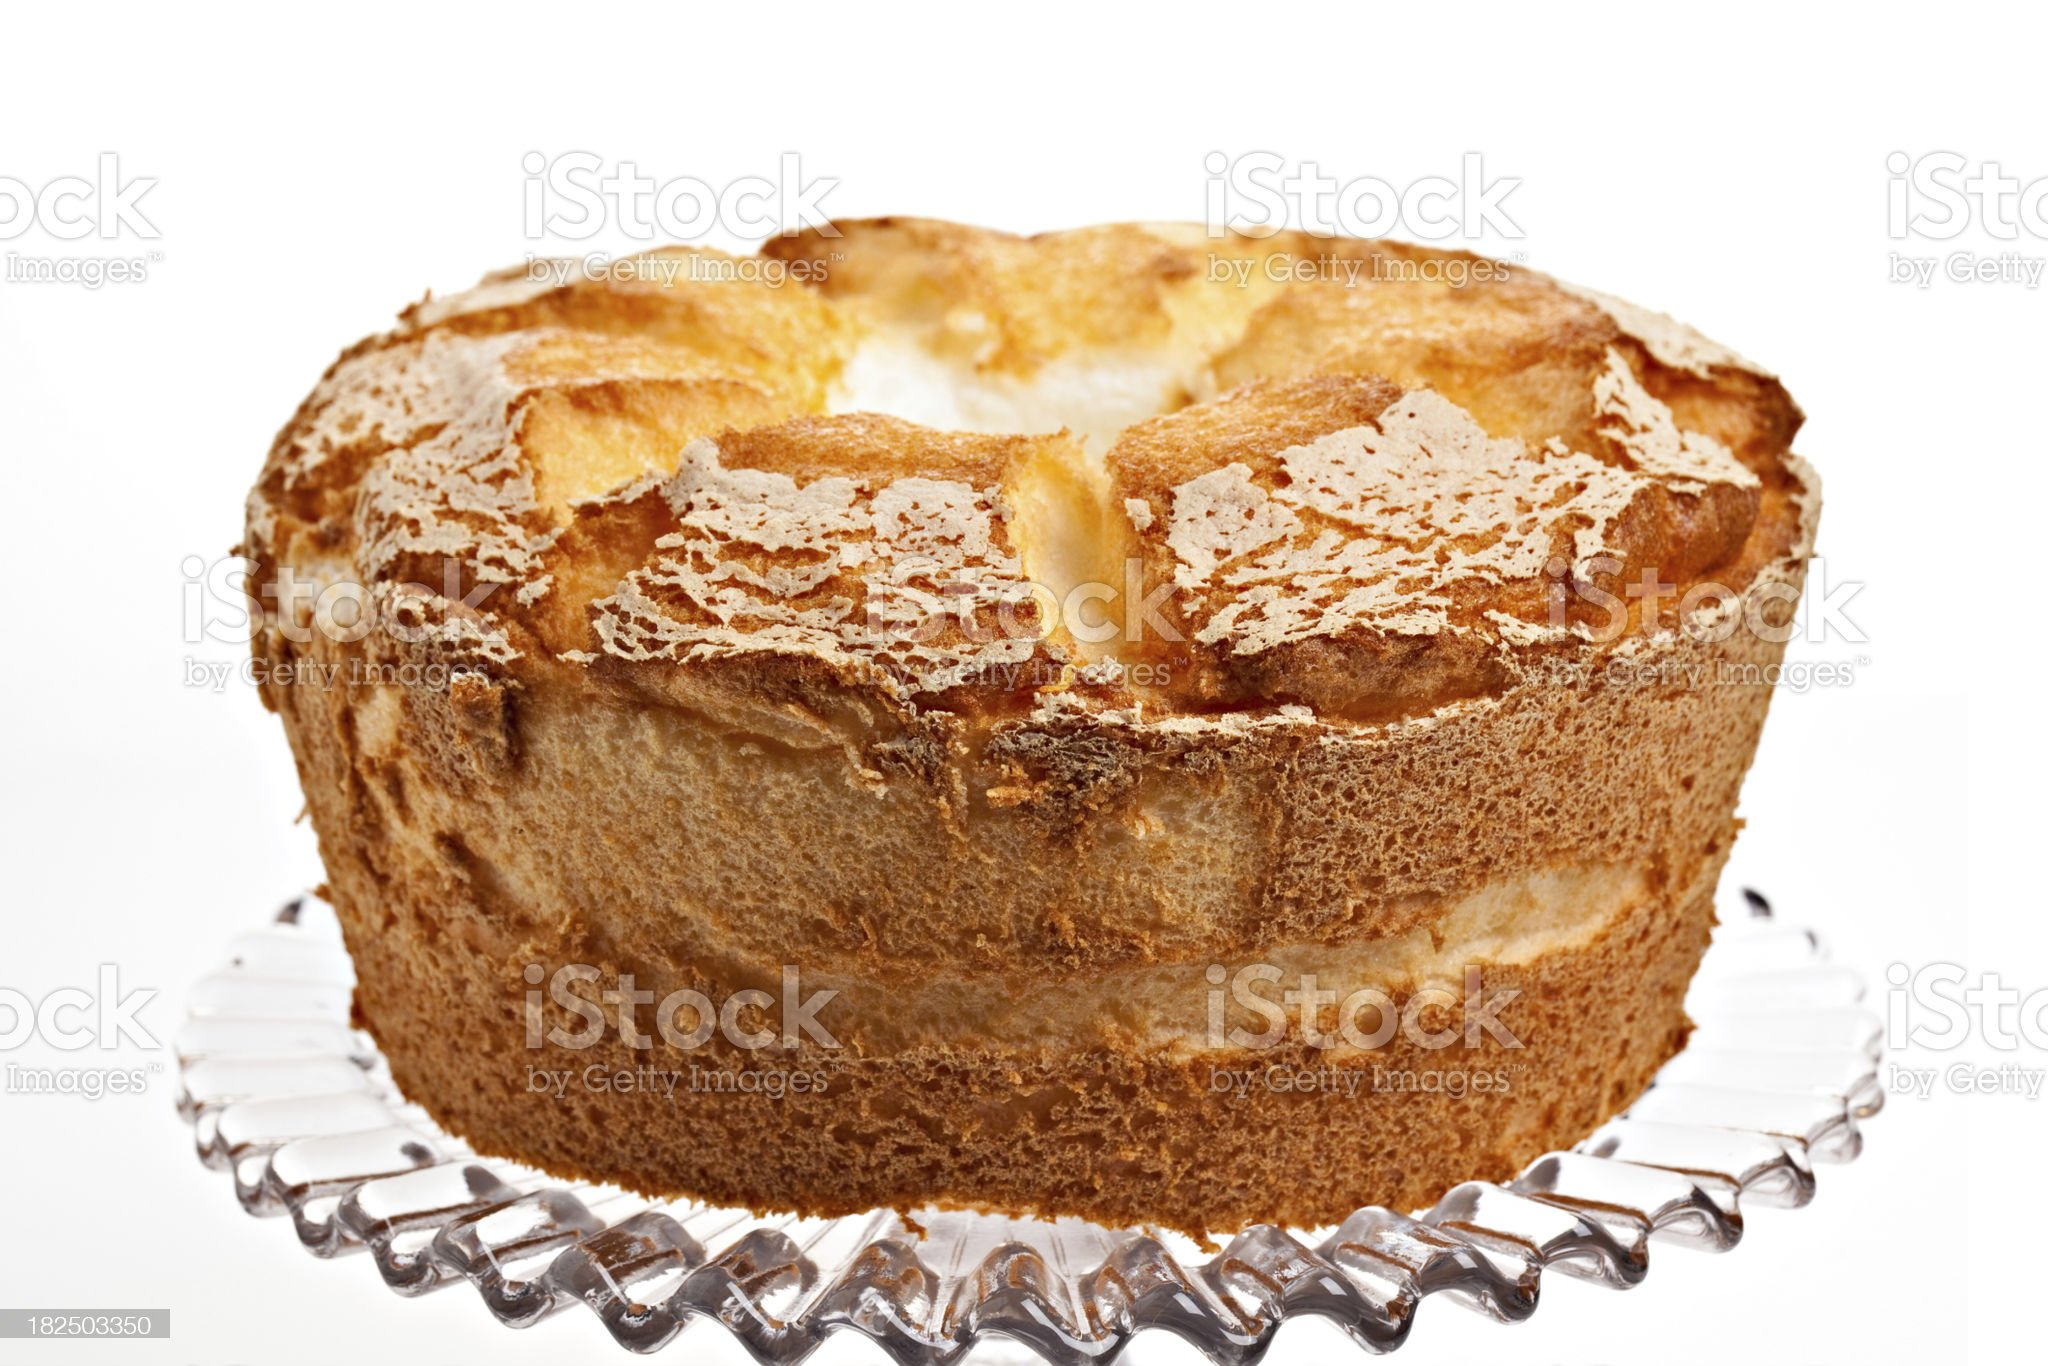 Whole Angel Food Cake royalty-free stock photo